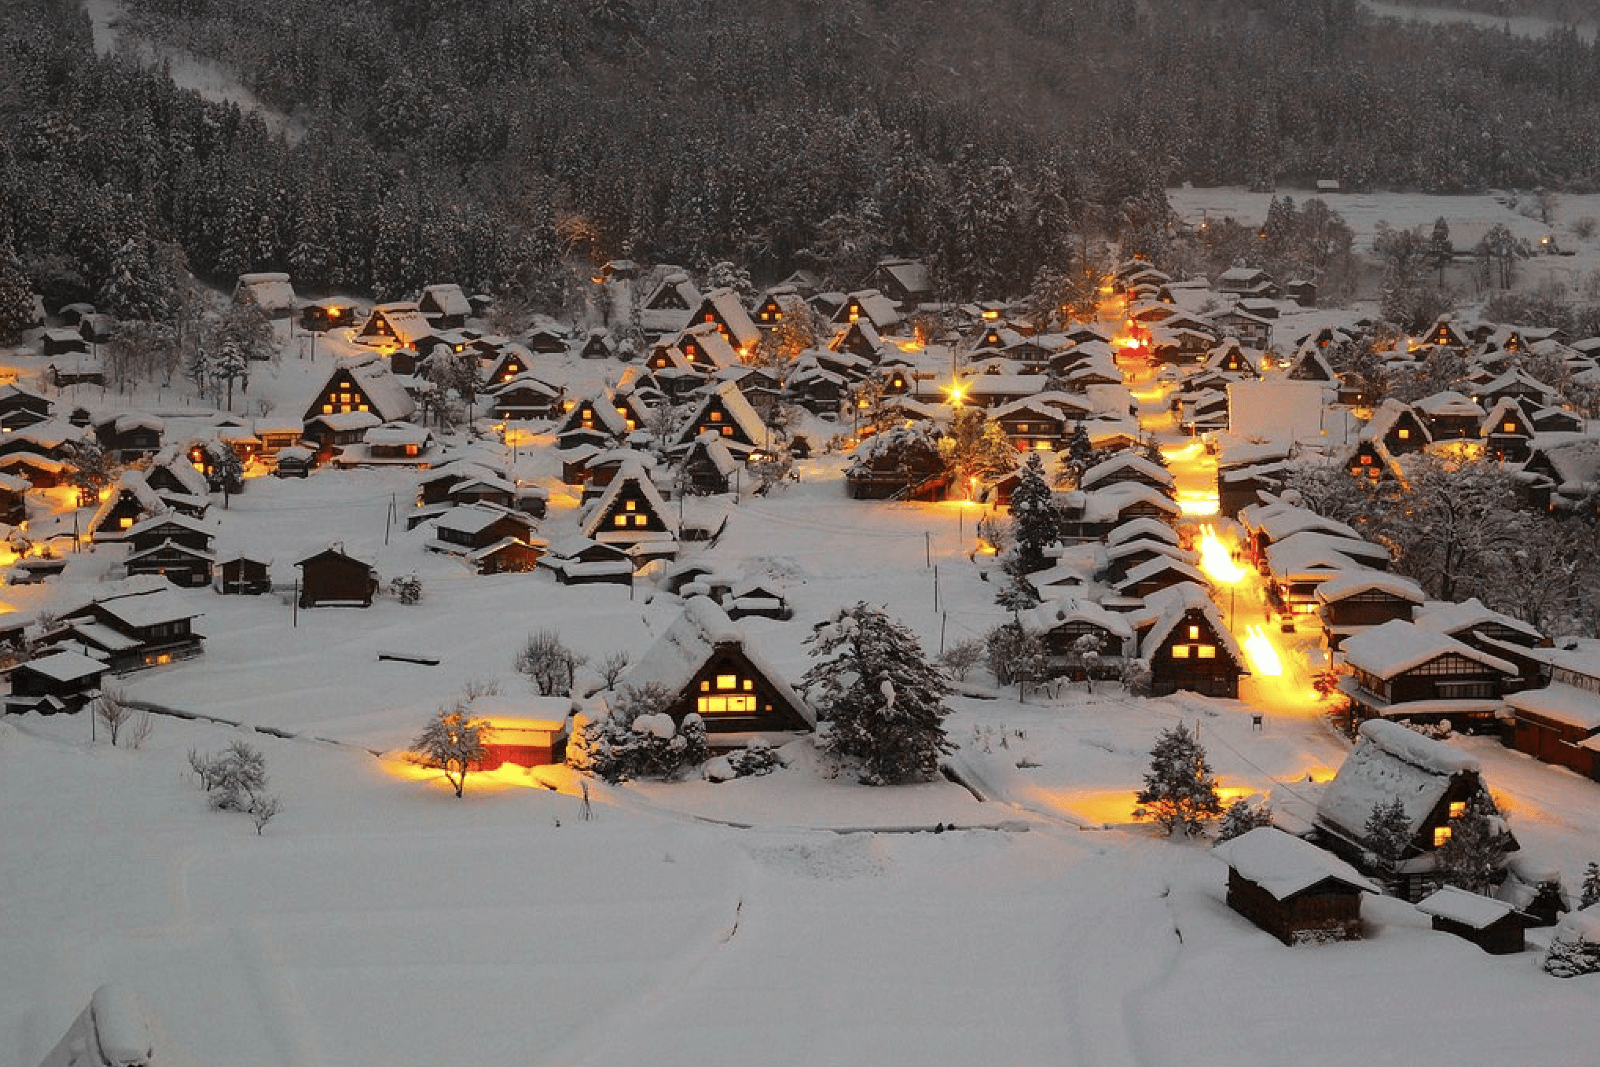 Shirakawago Village covered in snow in winter